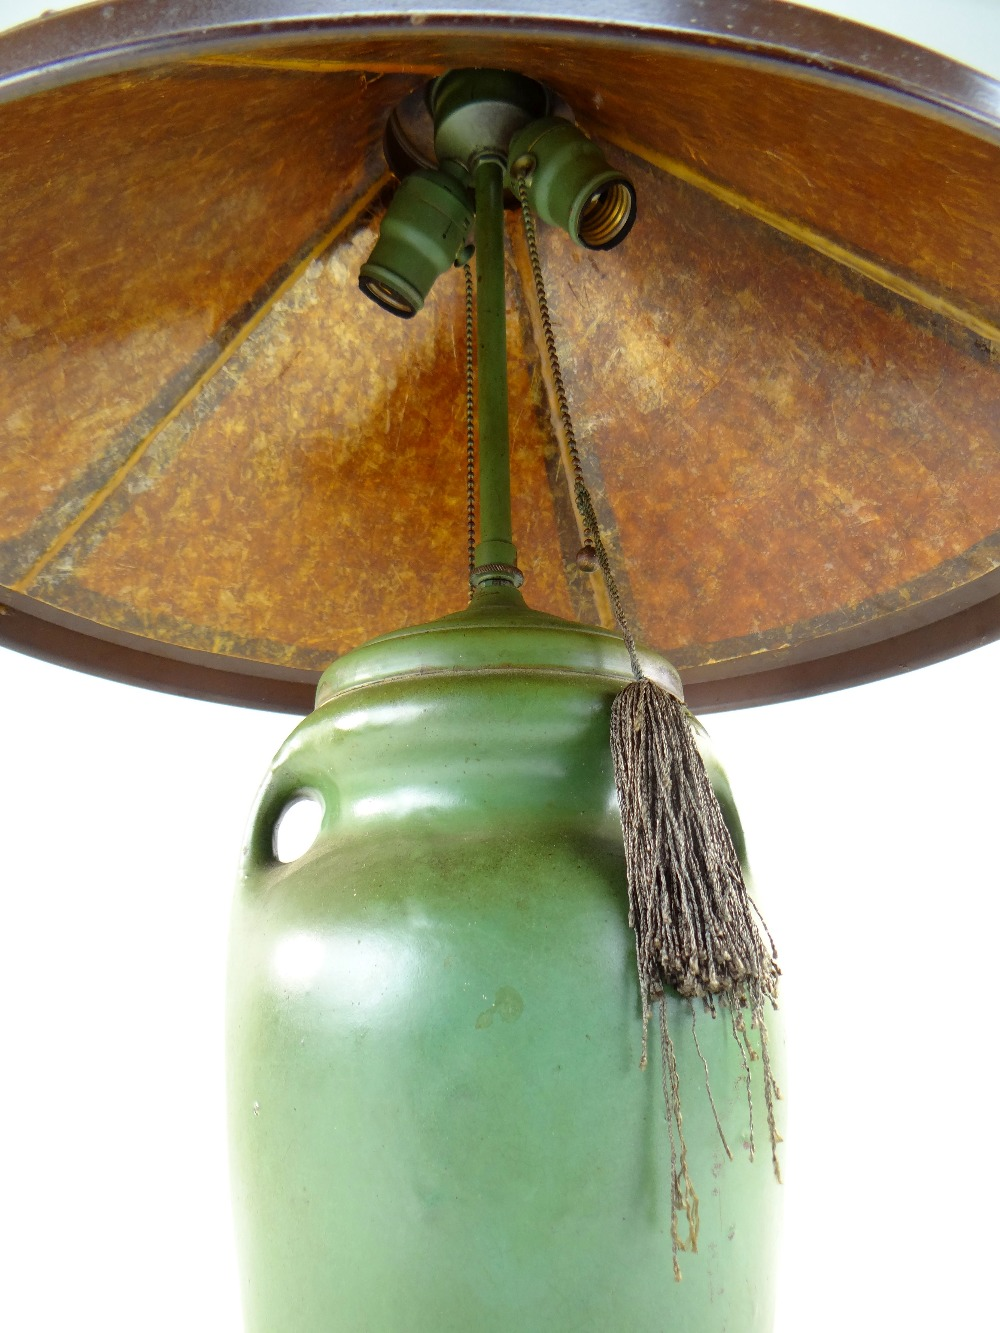 ARTS & CRAFTS DIRK VAN ERP-STYLE TABLE LAMP, conical simulated mica shade with riveted straps, on - Image 3 of 3